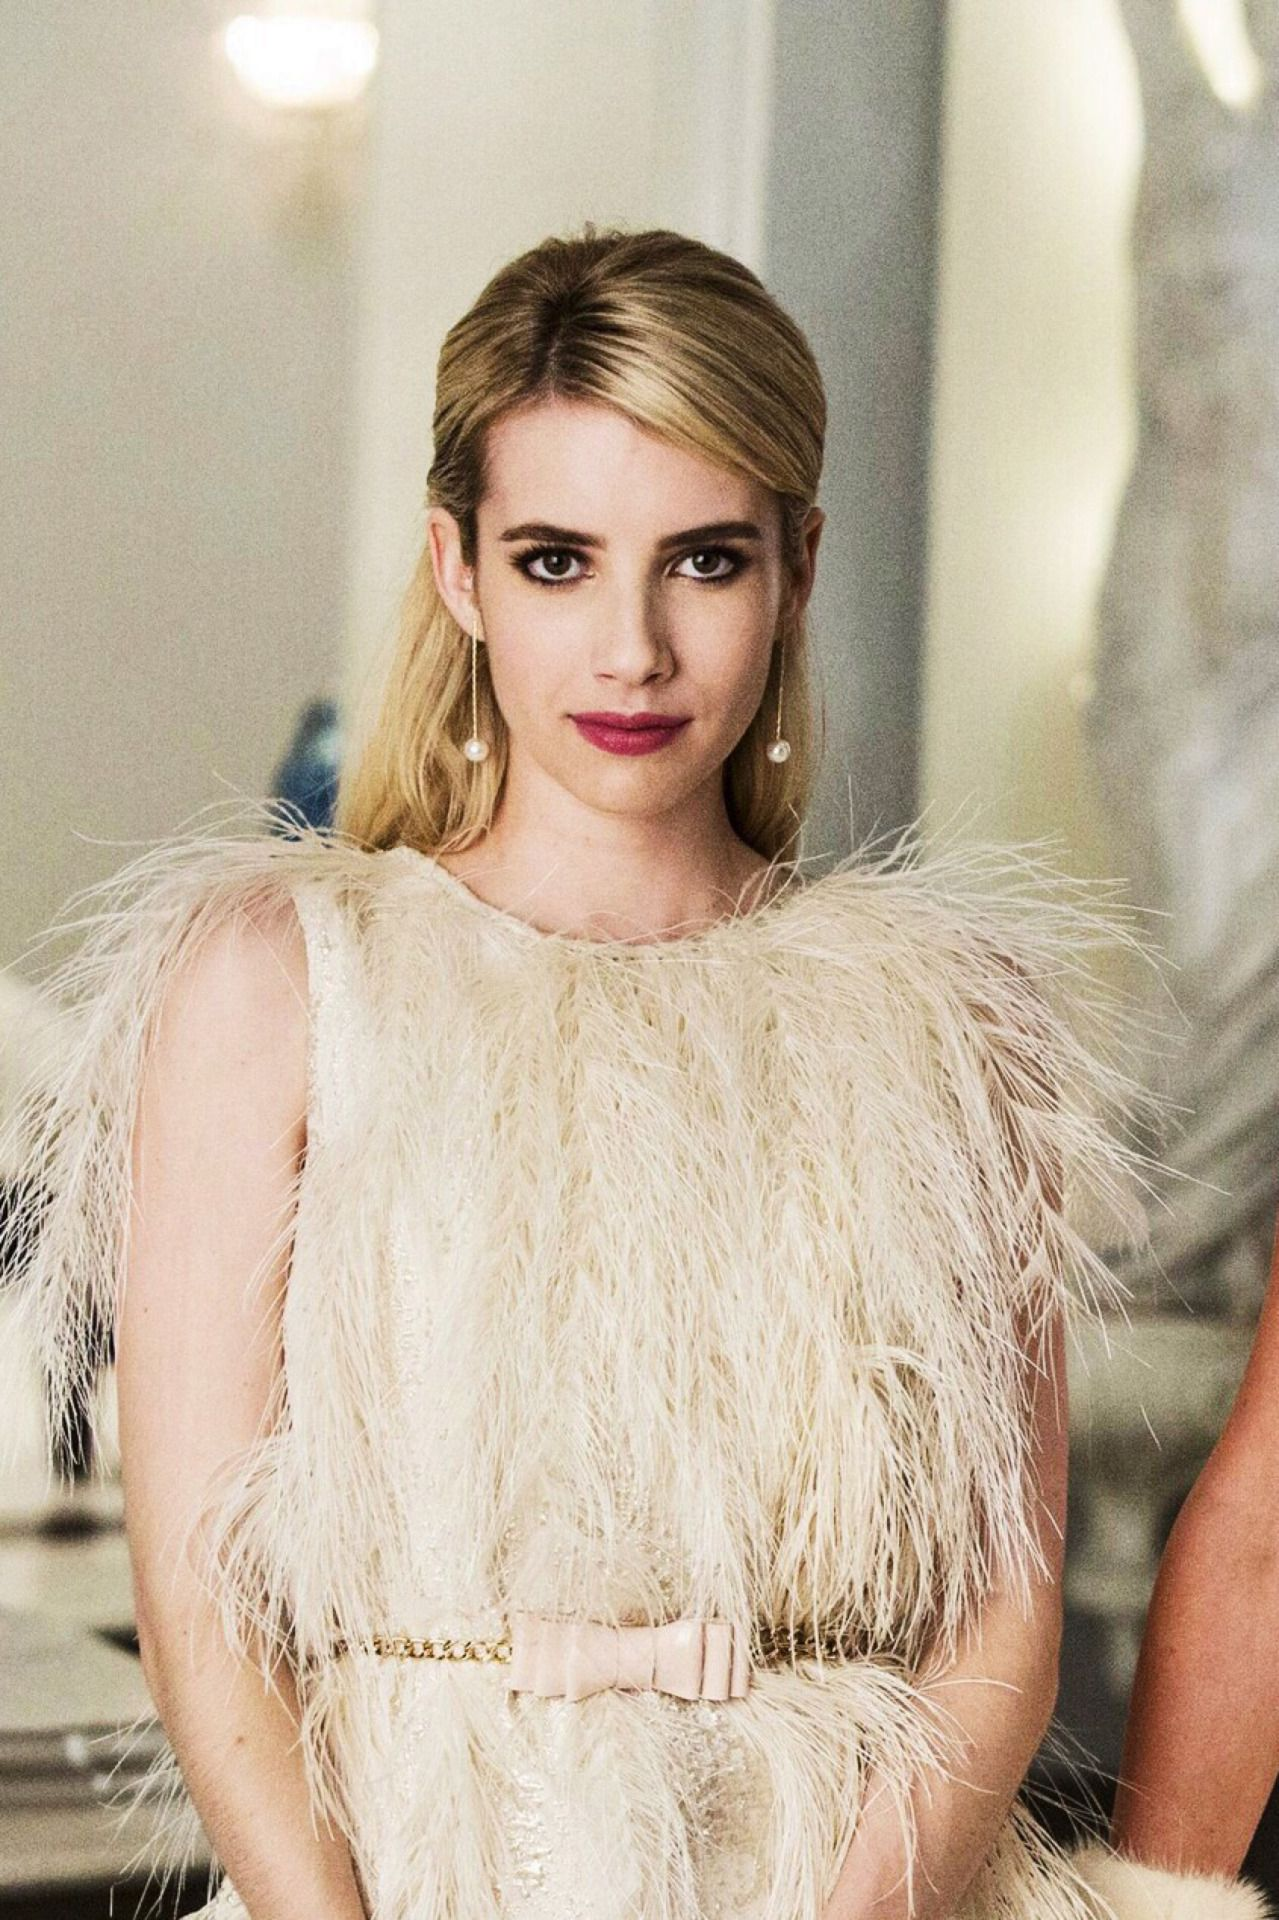 Discussion on this topic: Emma Roberts Rocks Old Hollywood Glam With , emma-roberts-rocks-old-hollywood-glam-with/